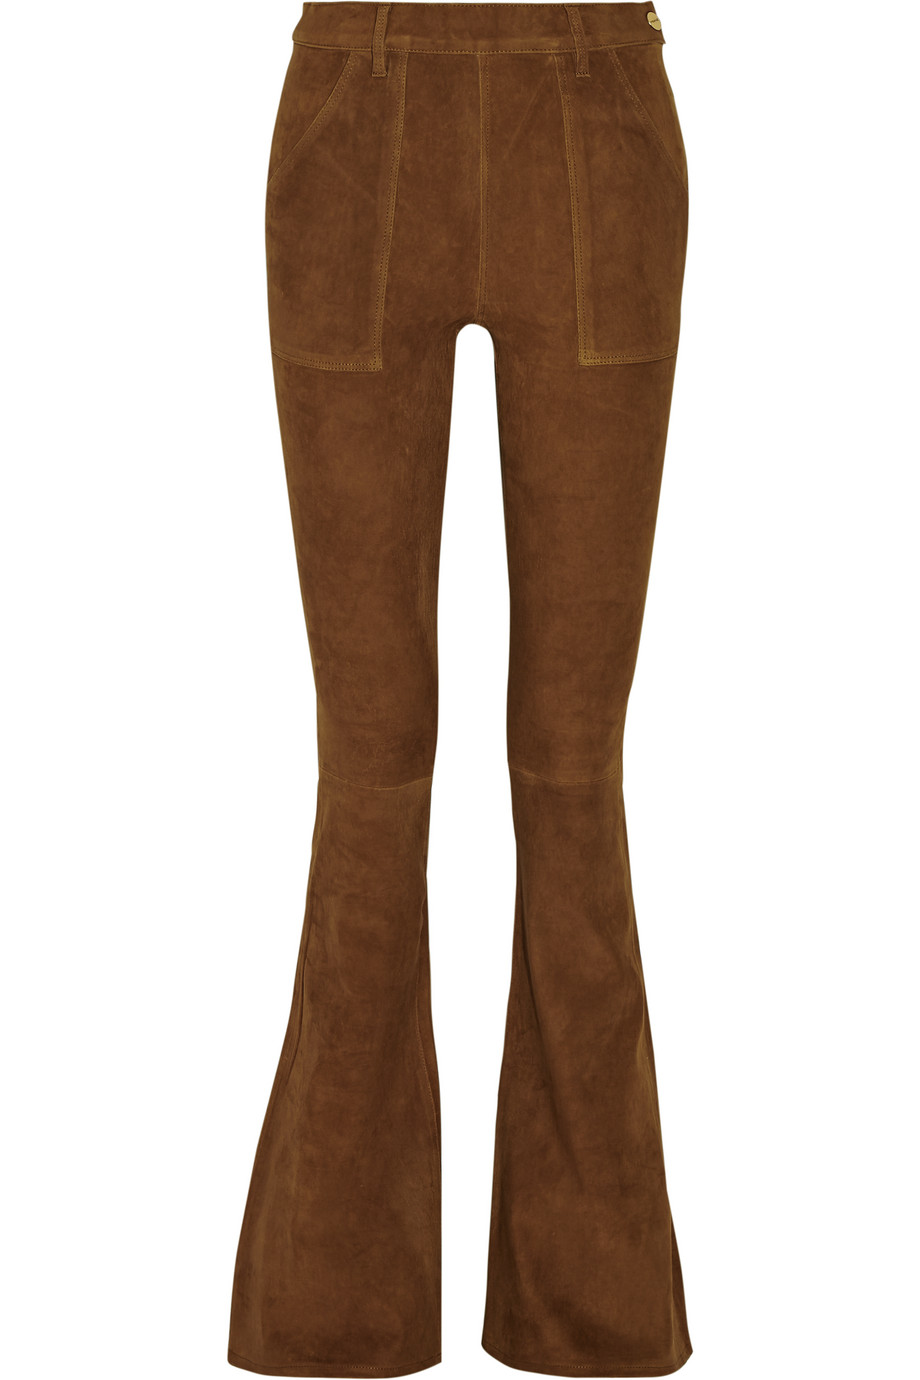 Frame Denim Le Flare De Francoise High-Rise Suede Flared Pants, Light Brown, Women's, Size: 28